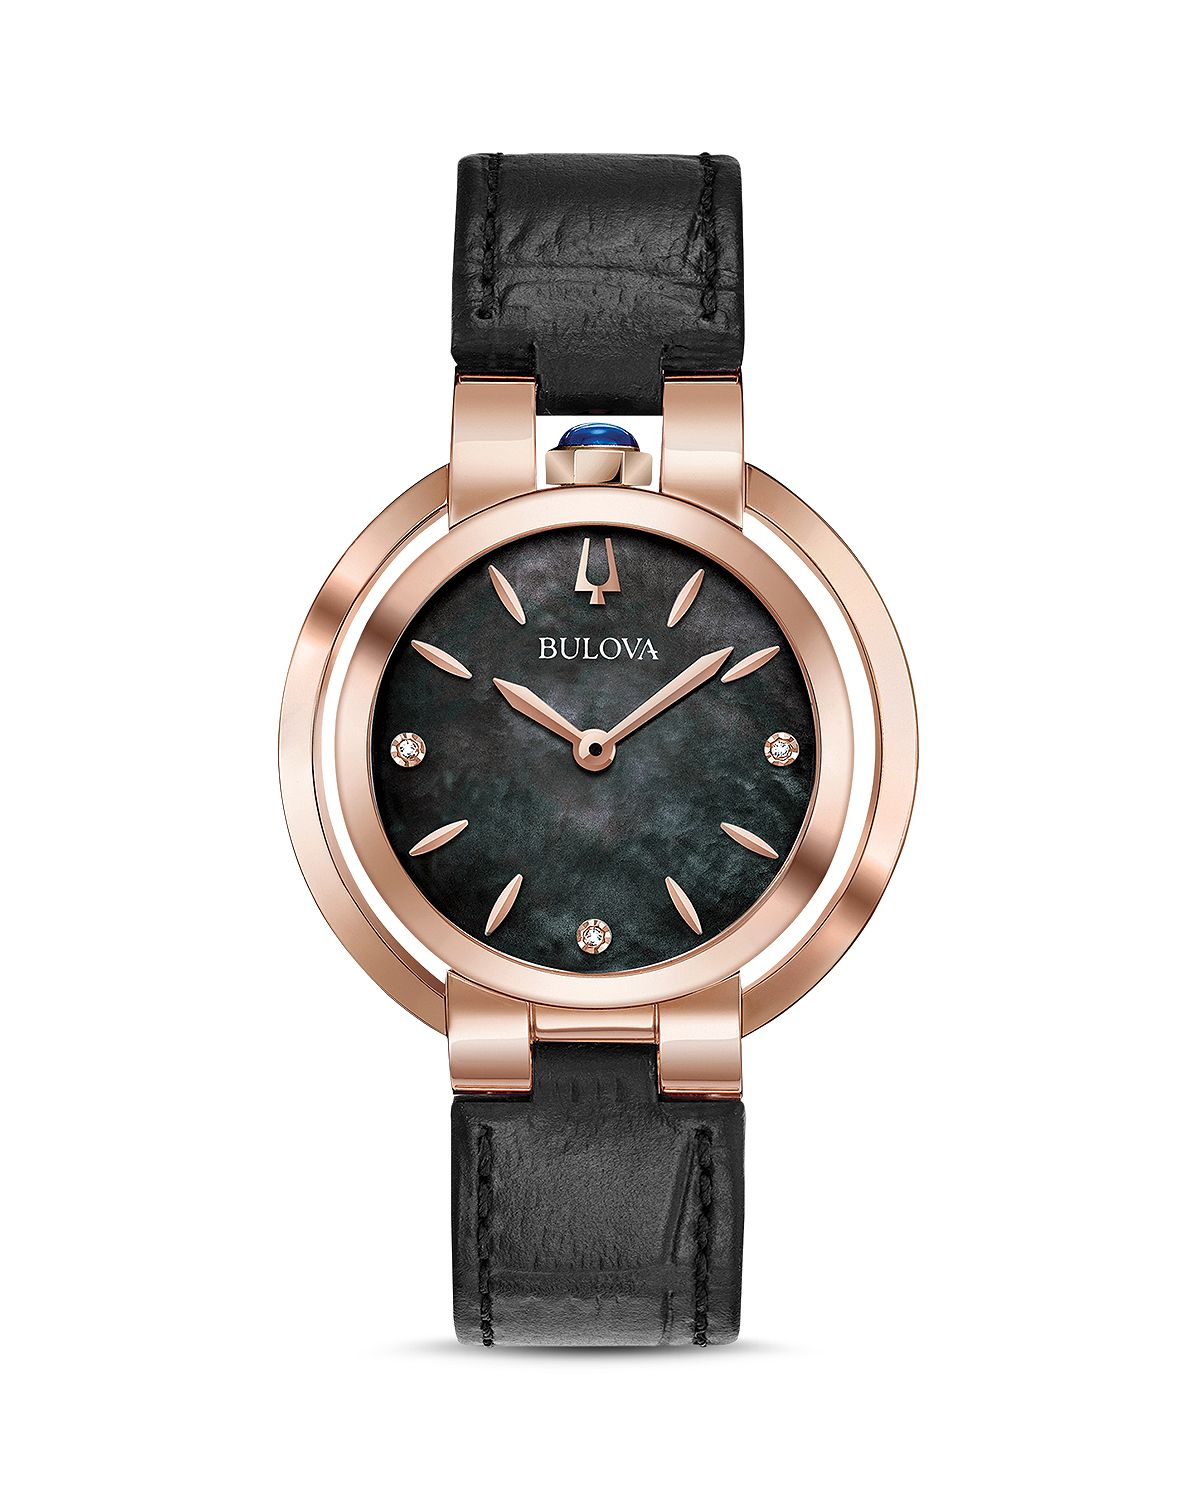 Bulova Rubaiyat Black Leather Strap Watch